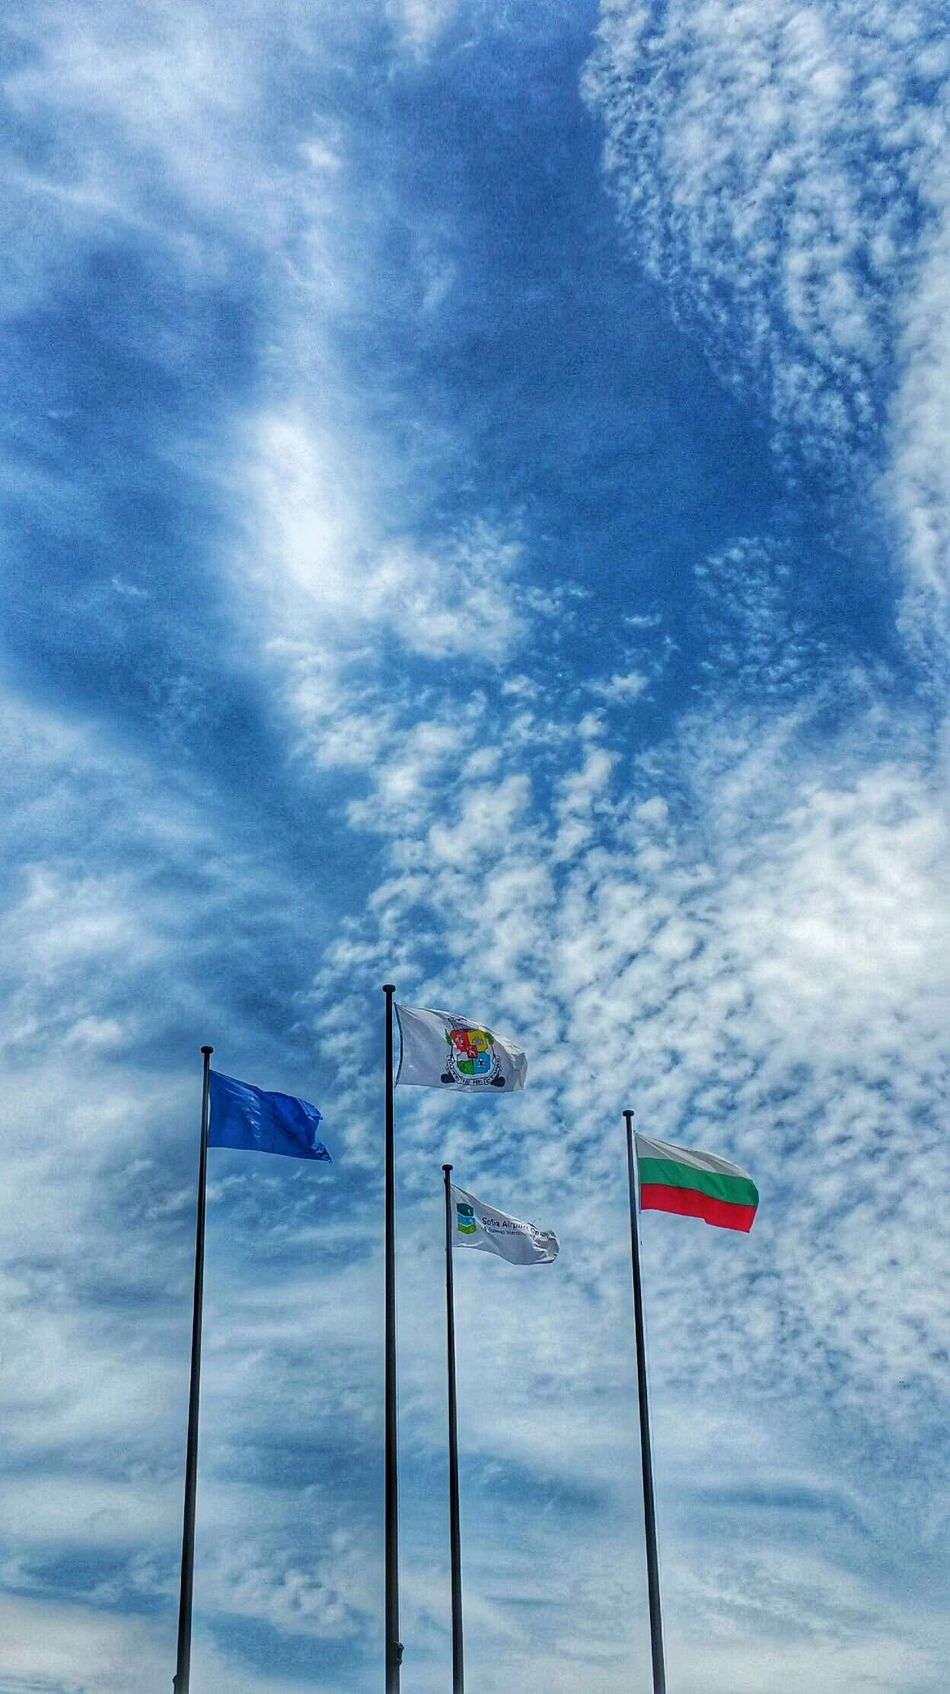 Flags Sofia Europeanunion Bulgaria Sky Bluesky Clouds